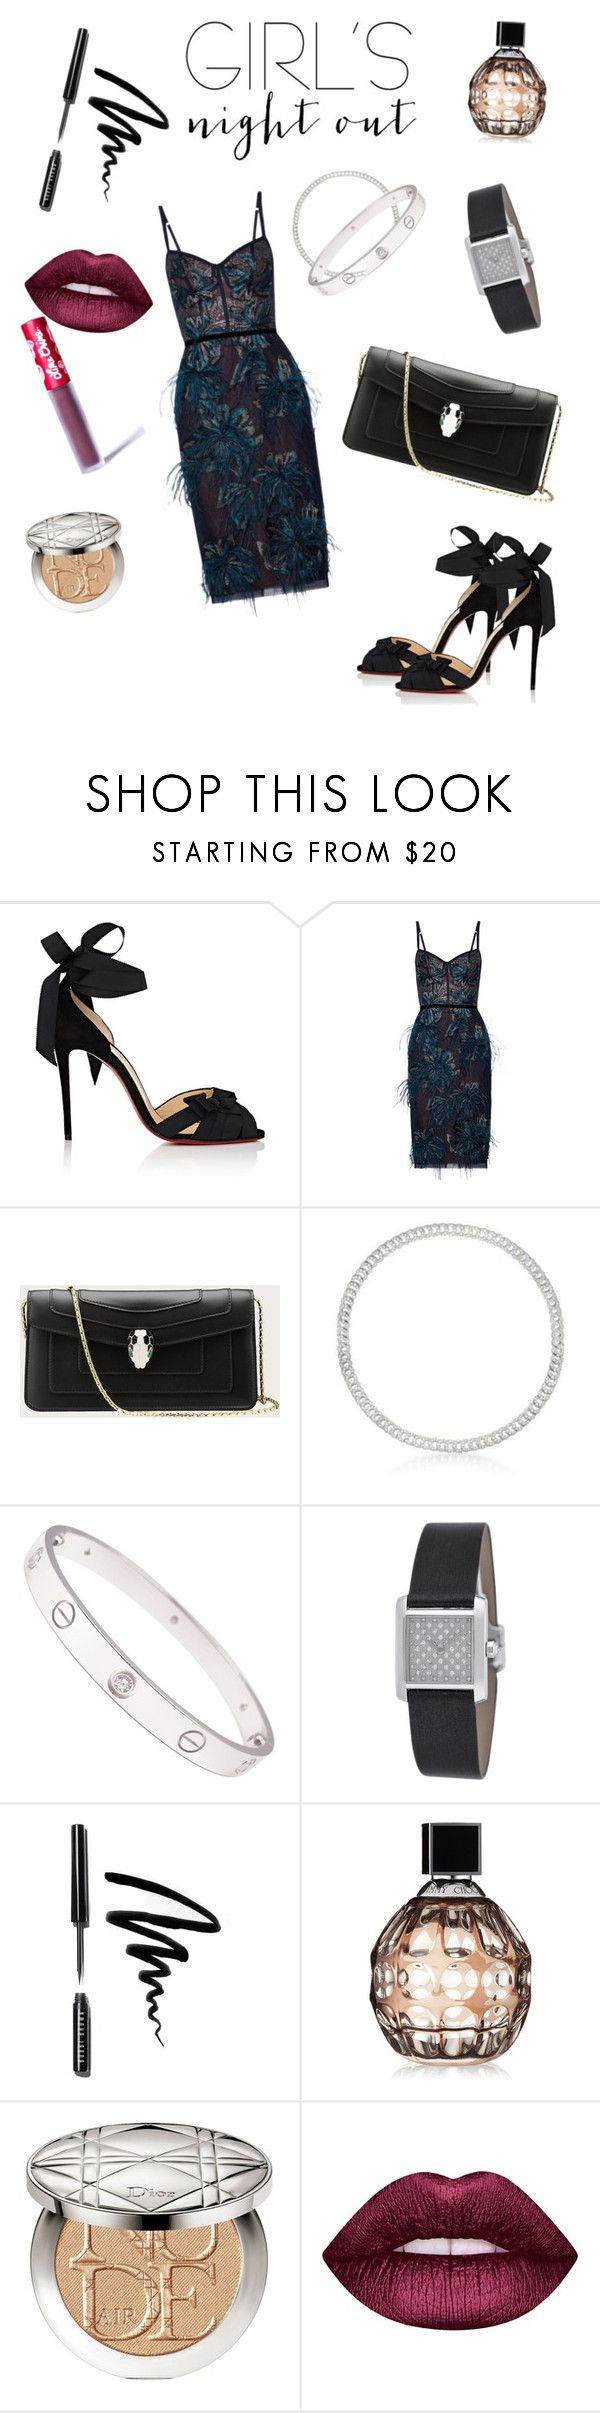 """""""Glam"""" by bpinphaya-gresch ❤ liked on Polyvore featuring Christian Louboutin, Notte by Marchesa, Cartier, Bobbi Brown Cosmetics, Jimmy Choo, Christian Dior and Lime Crime"""